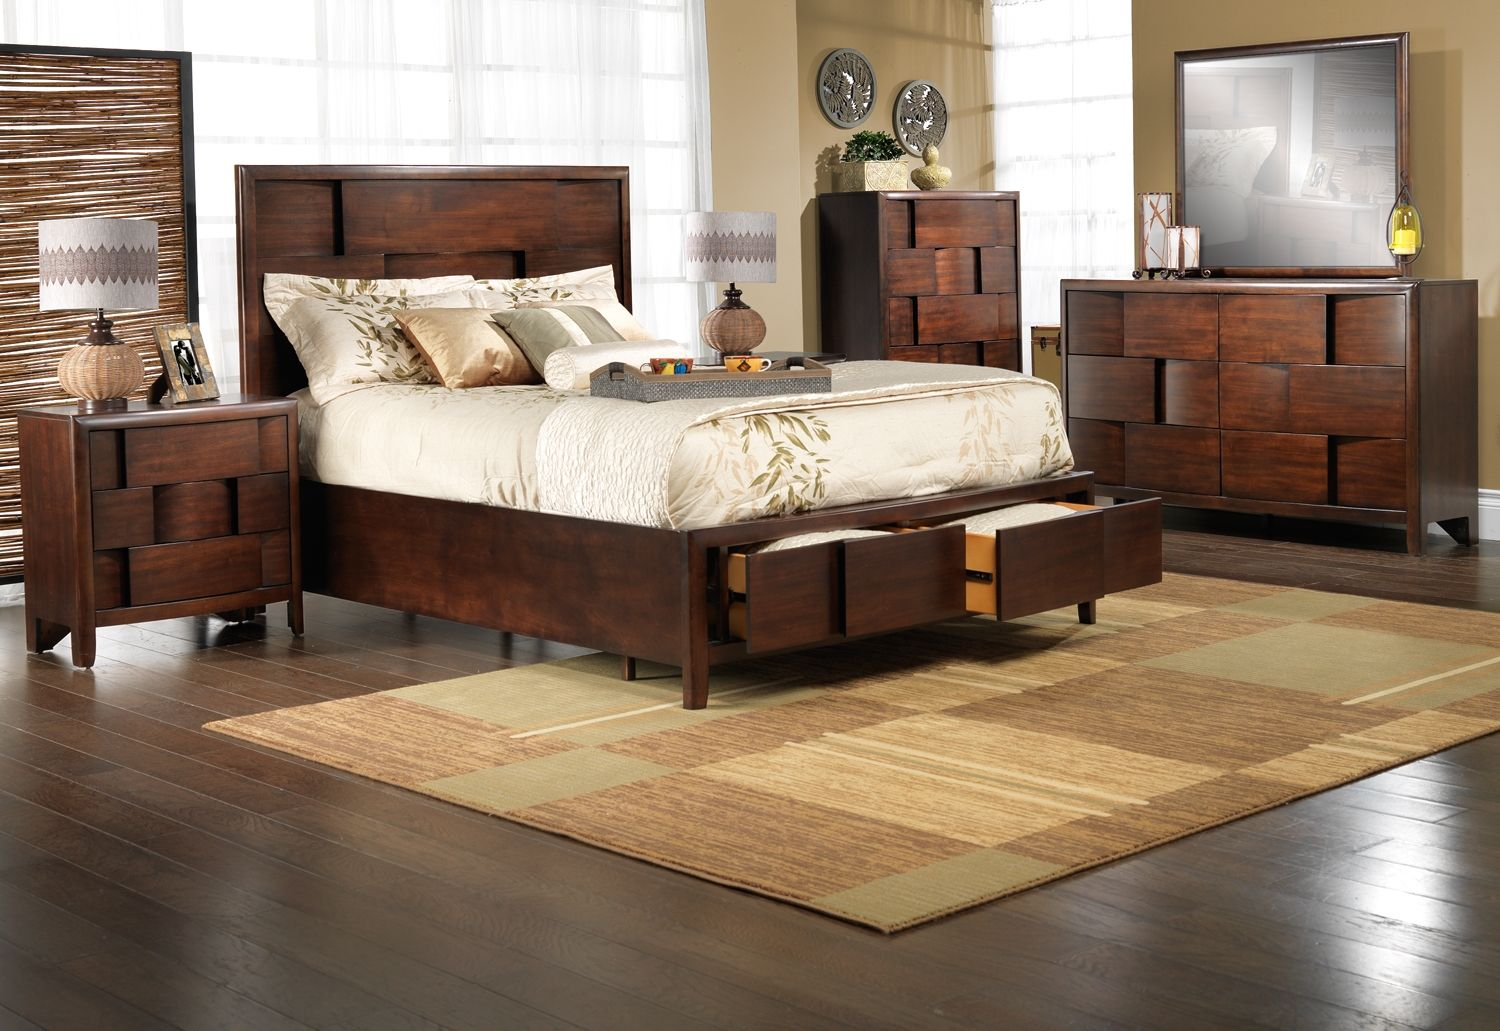 Nova Bedroom Collection - Leon\'s | Furniture for my new home ...